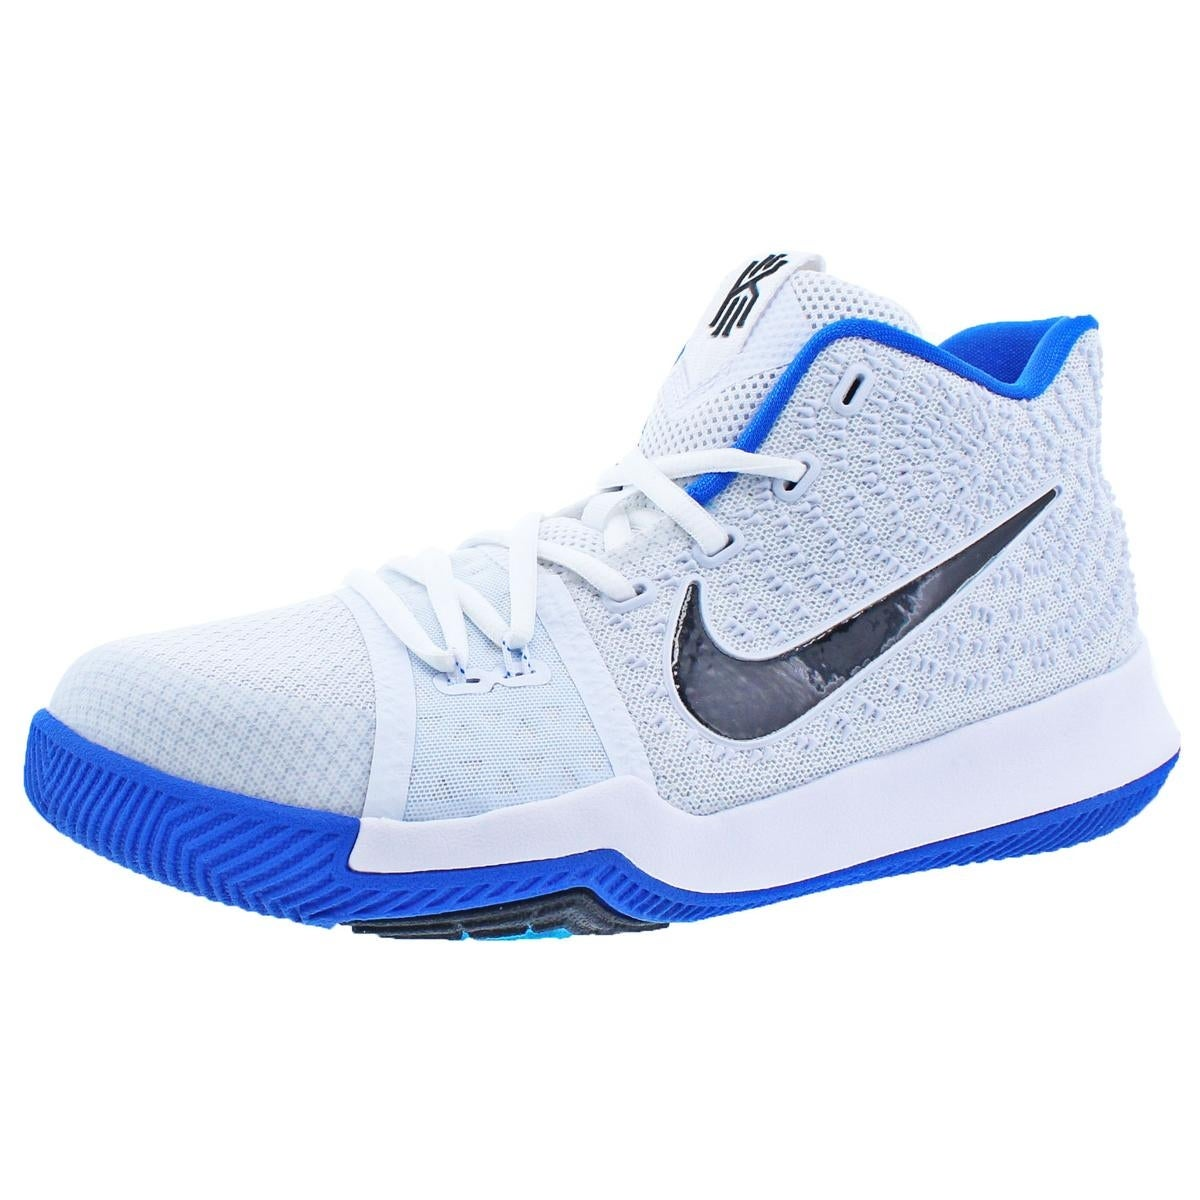 10bdc0b1fe2d Shop Nike Boys Kyrie 3 Basketball Shoes Colorblock Mids - Free Shipping  Today - Overstock - 22025161